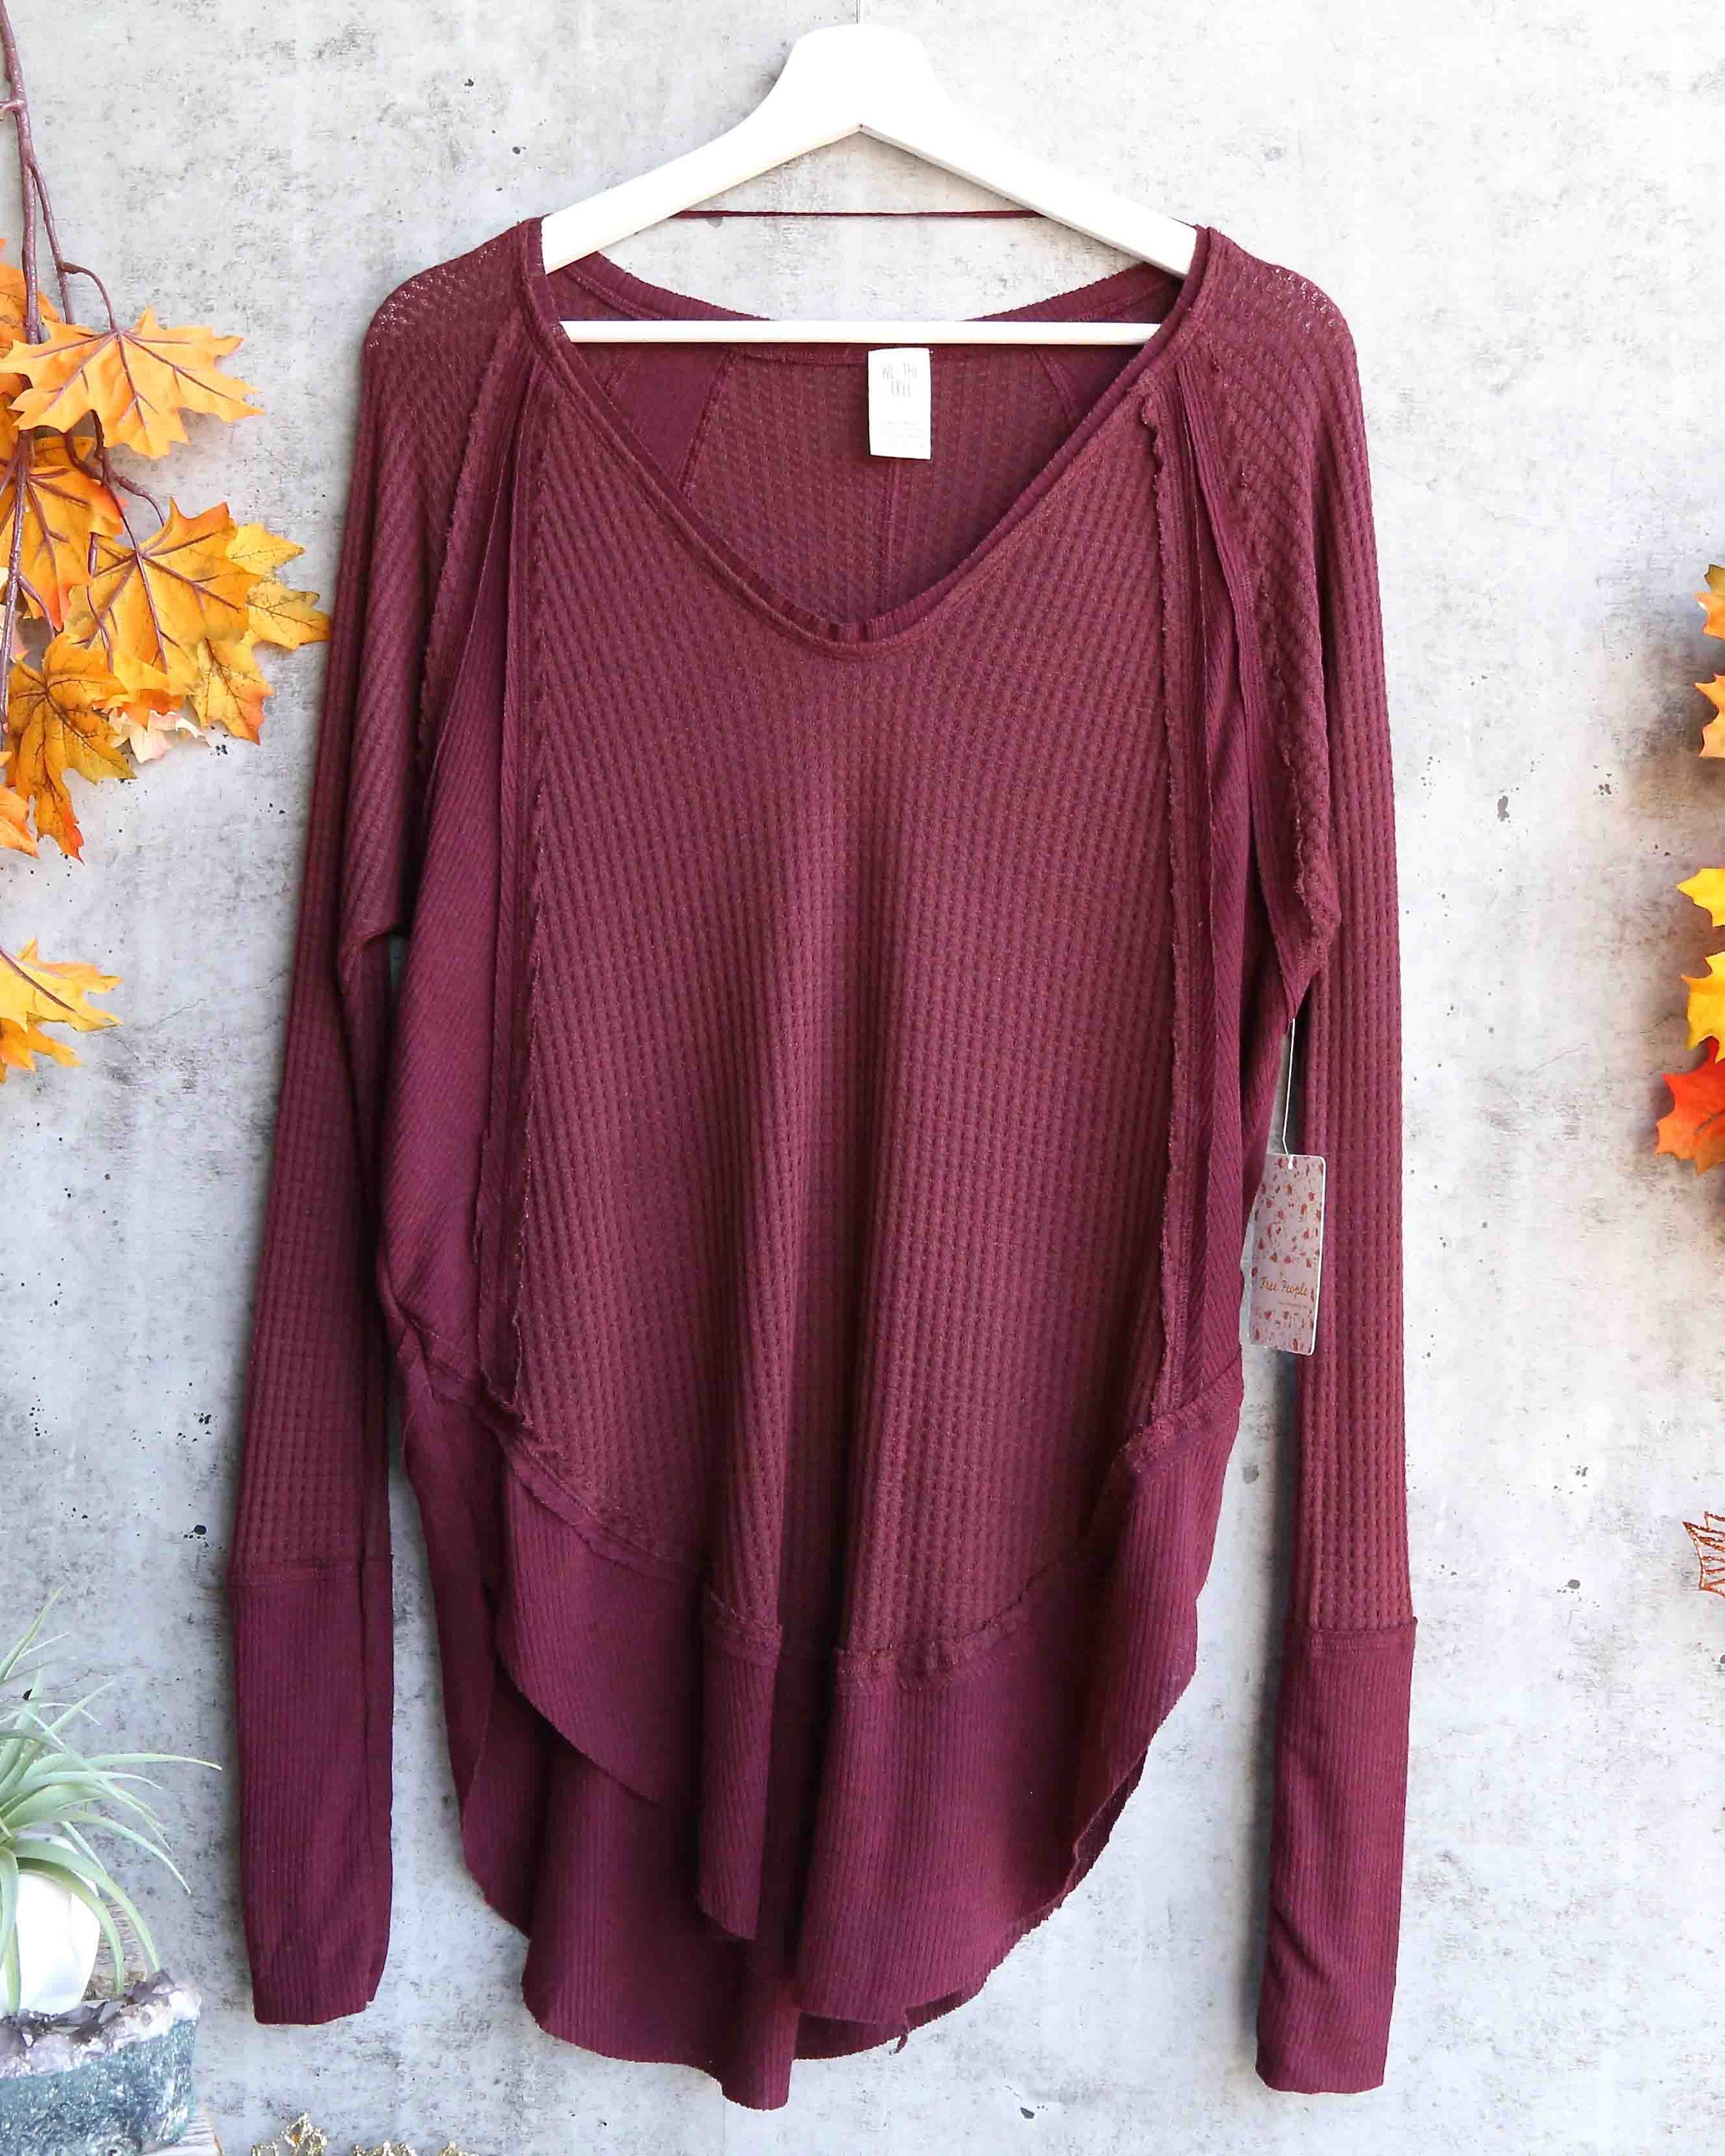 011b376ff5 Free People - Catalina long-sleeve thermal top - Plumberry Heather